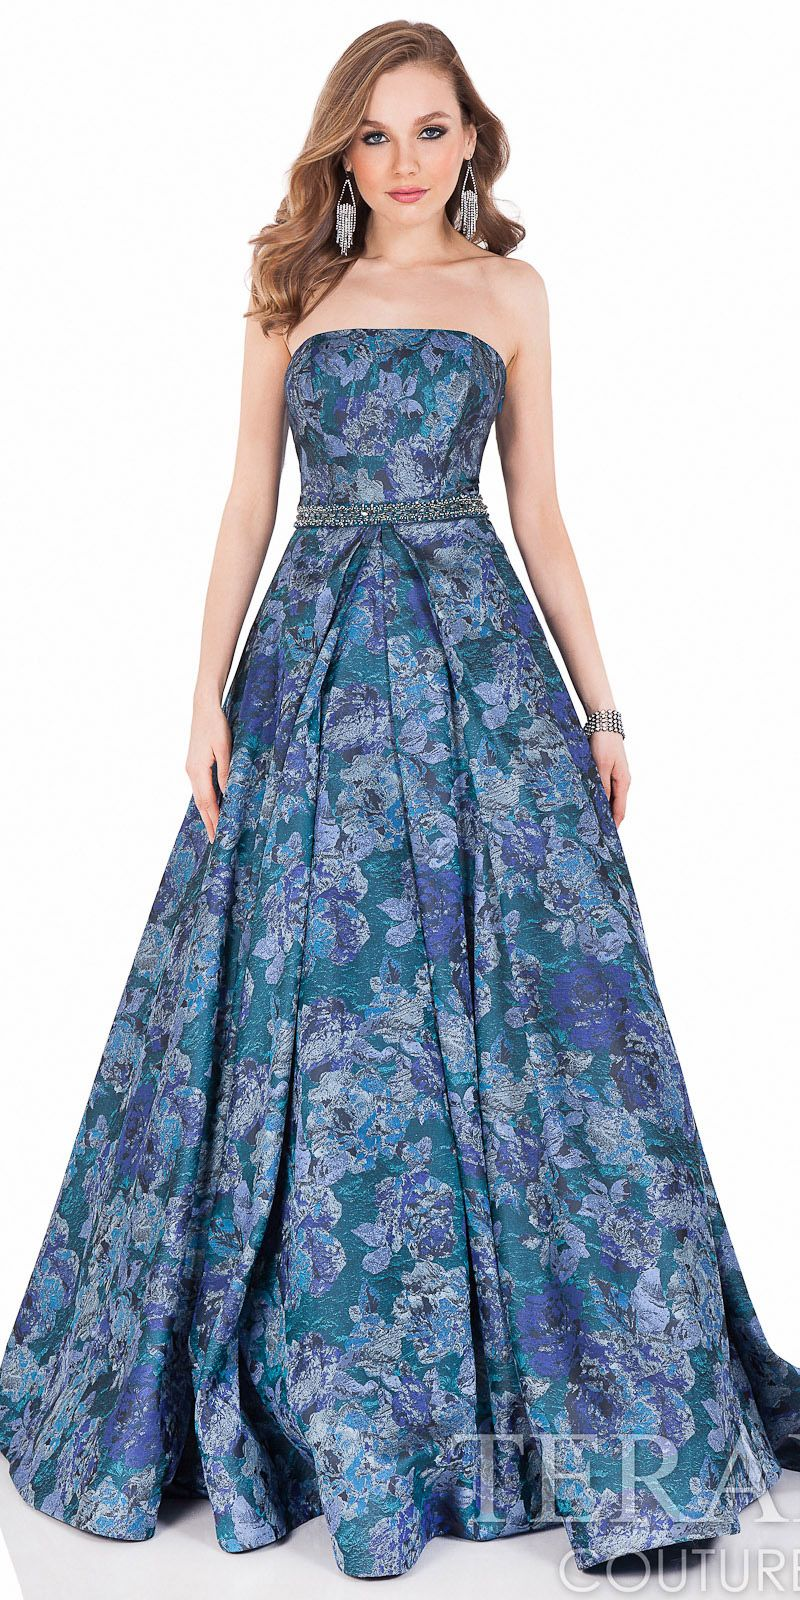 Triple Flat Bow Ball Gown by Terani Couture #edressme | NEW & NOW ...